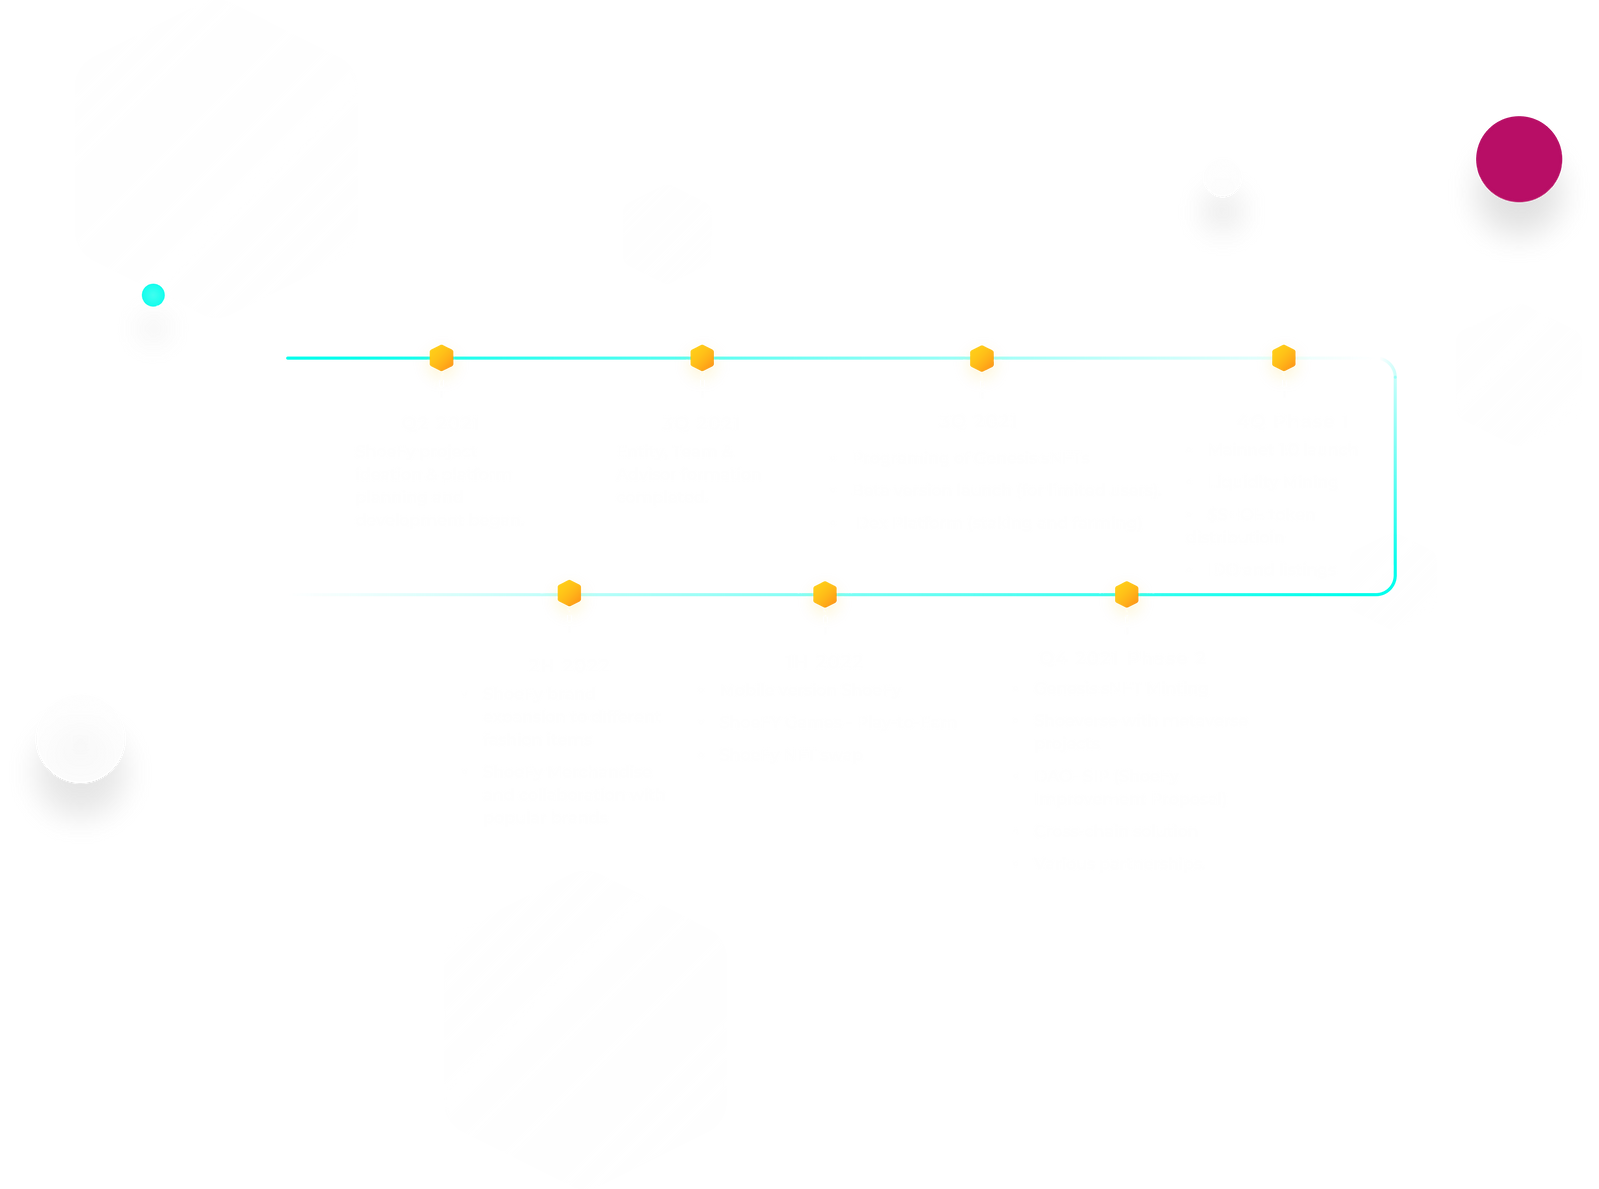 Updated Roadmap 1.1.png